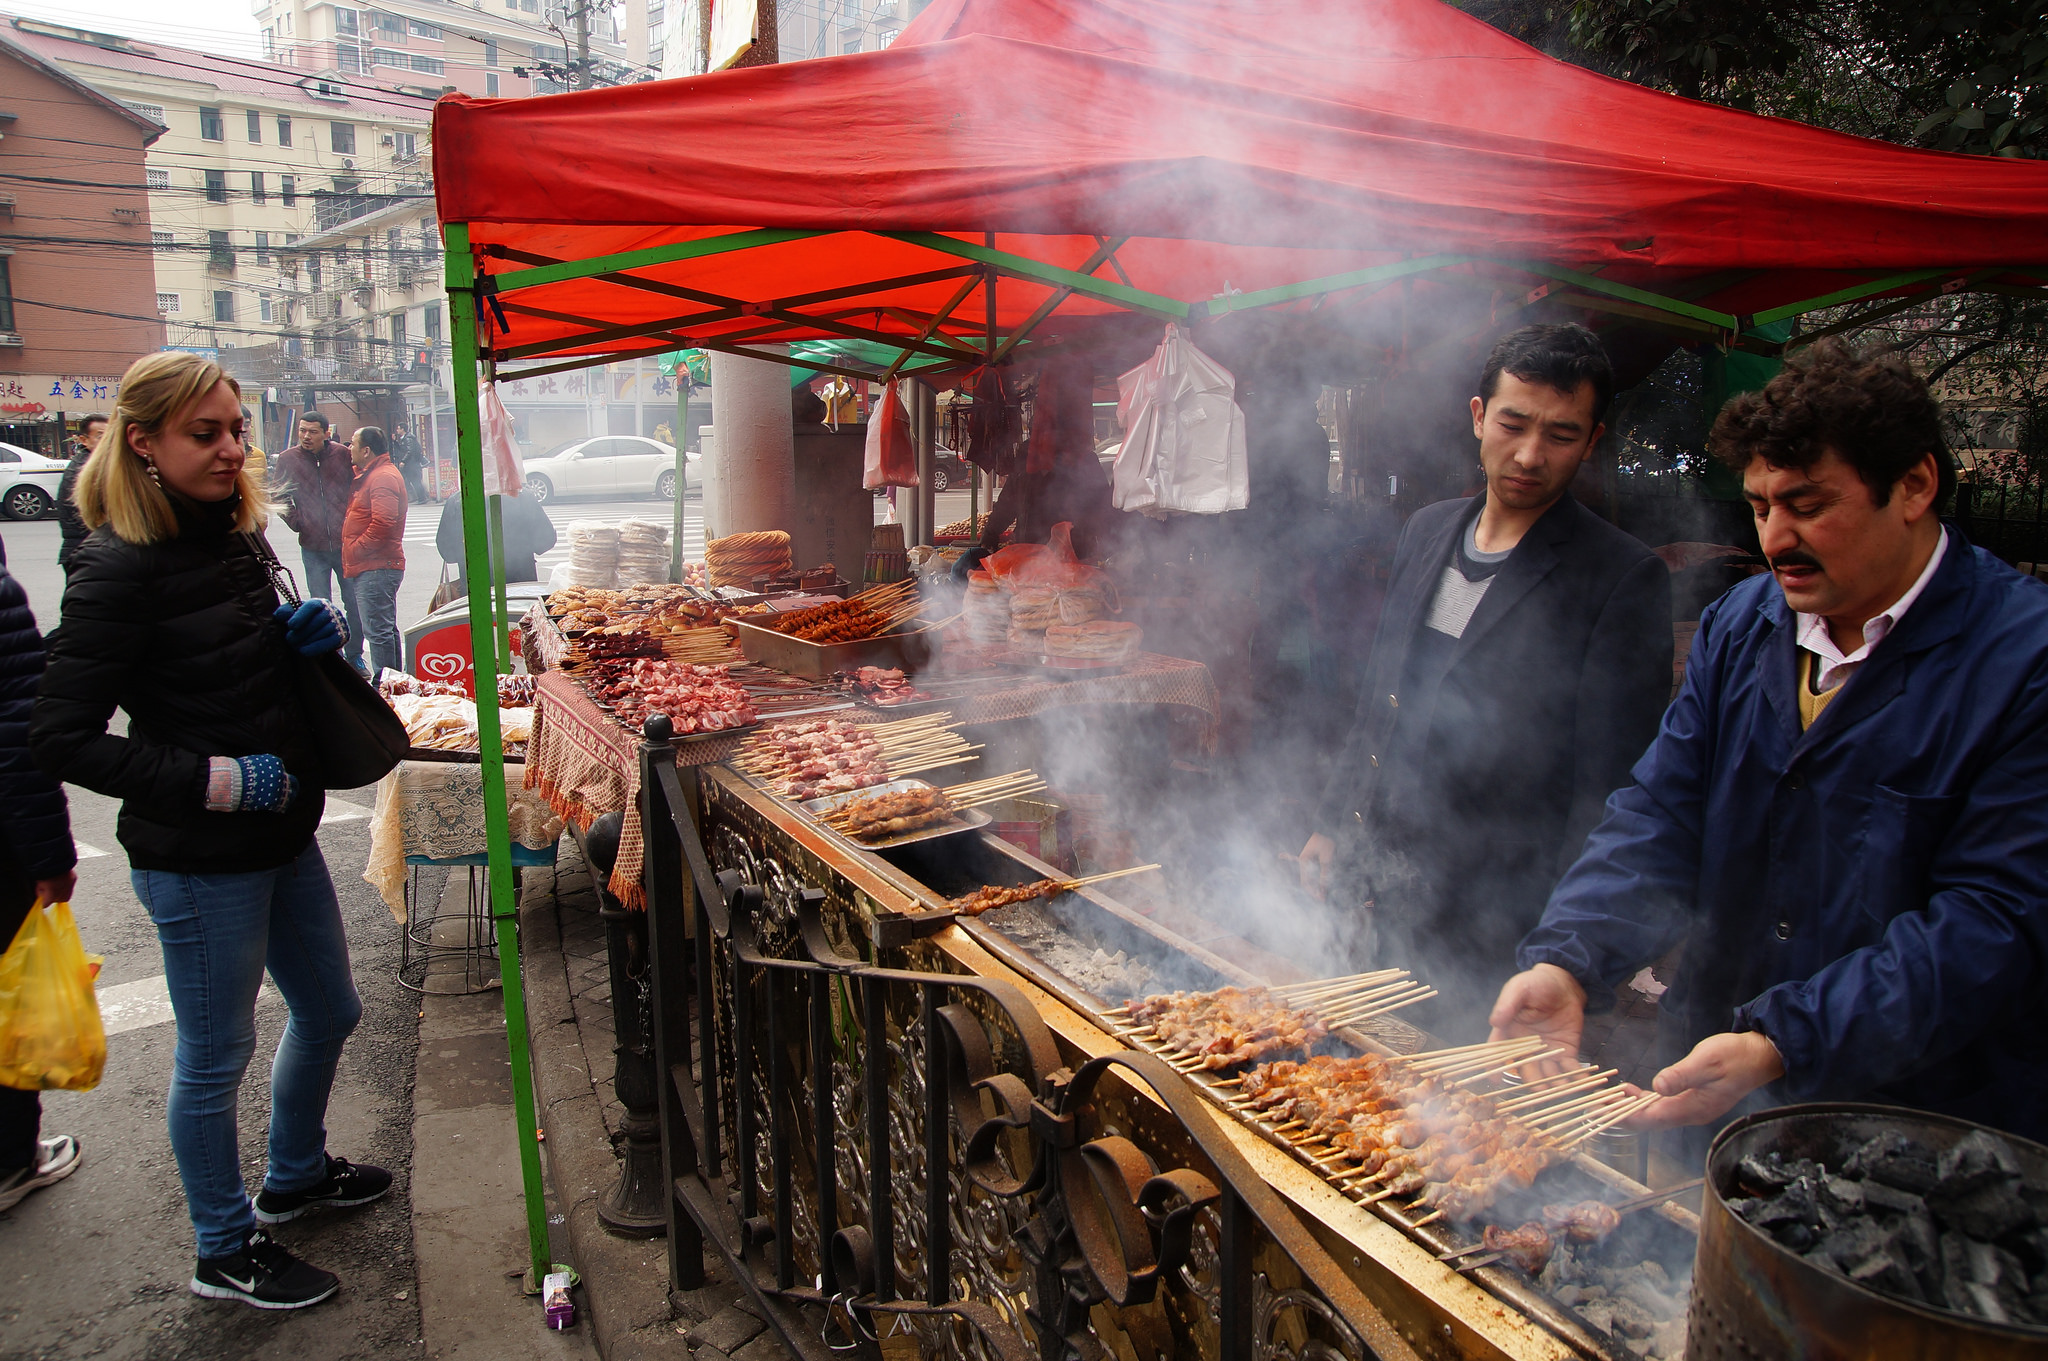 Lamb Skewers at the Shanghai Muslim Market | ©Mathias Apitz/Flickr